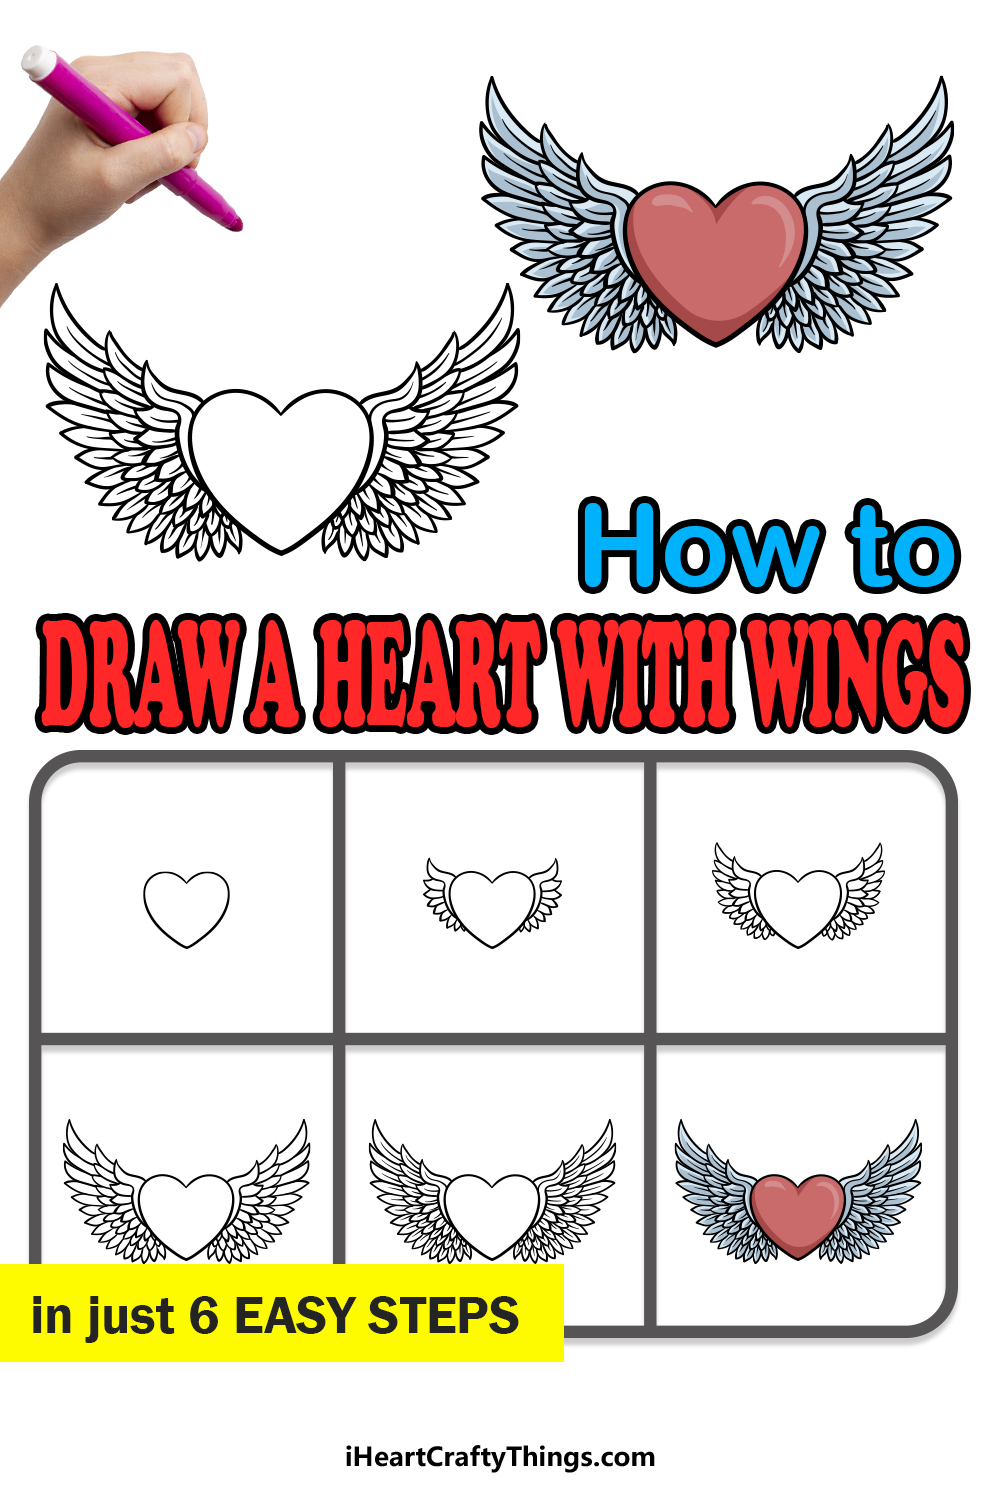 how to draw a heart with wings in 6 easy steps